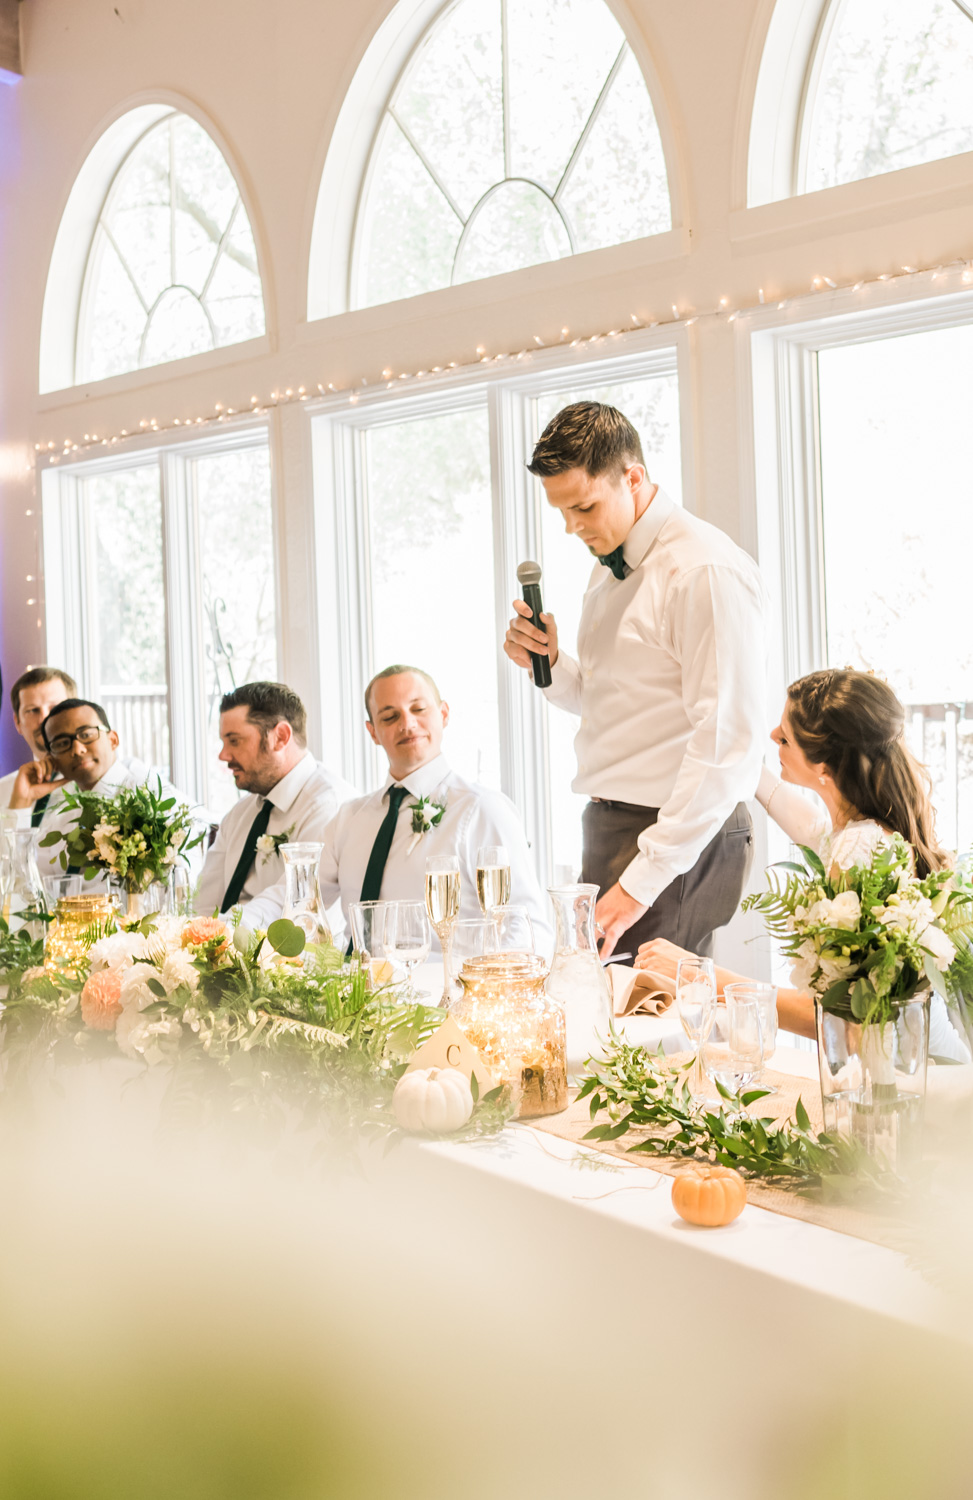 Wedding speech by the groom - You can't miss this!